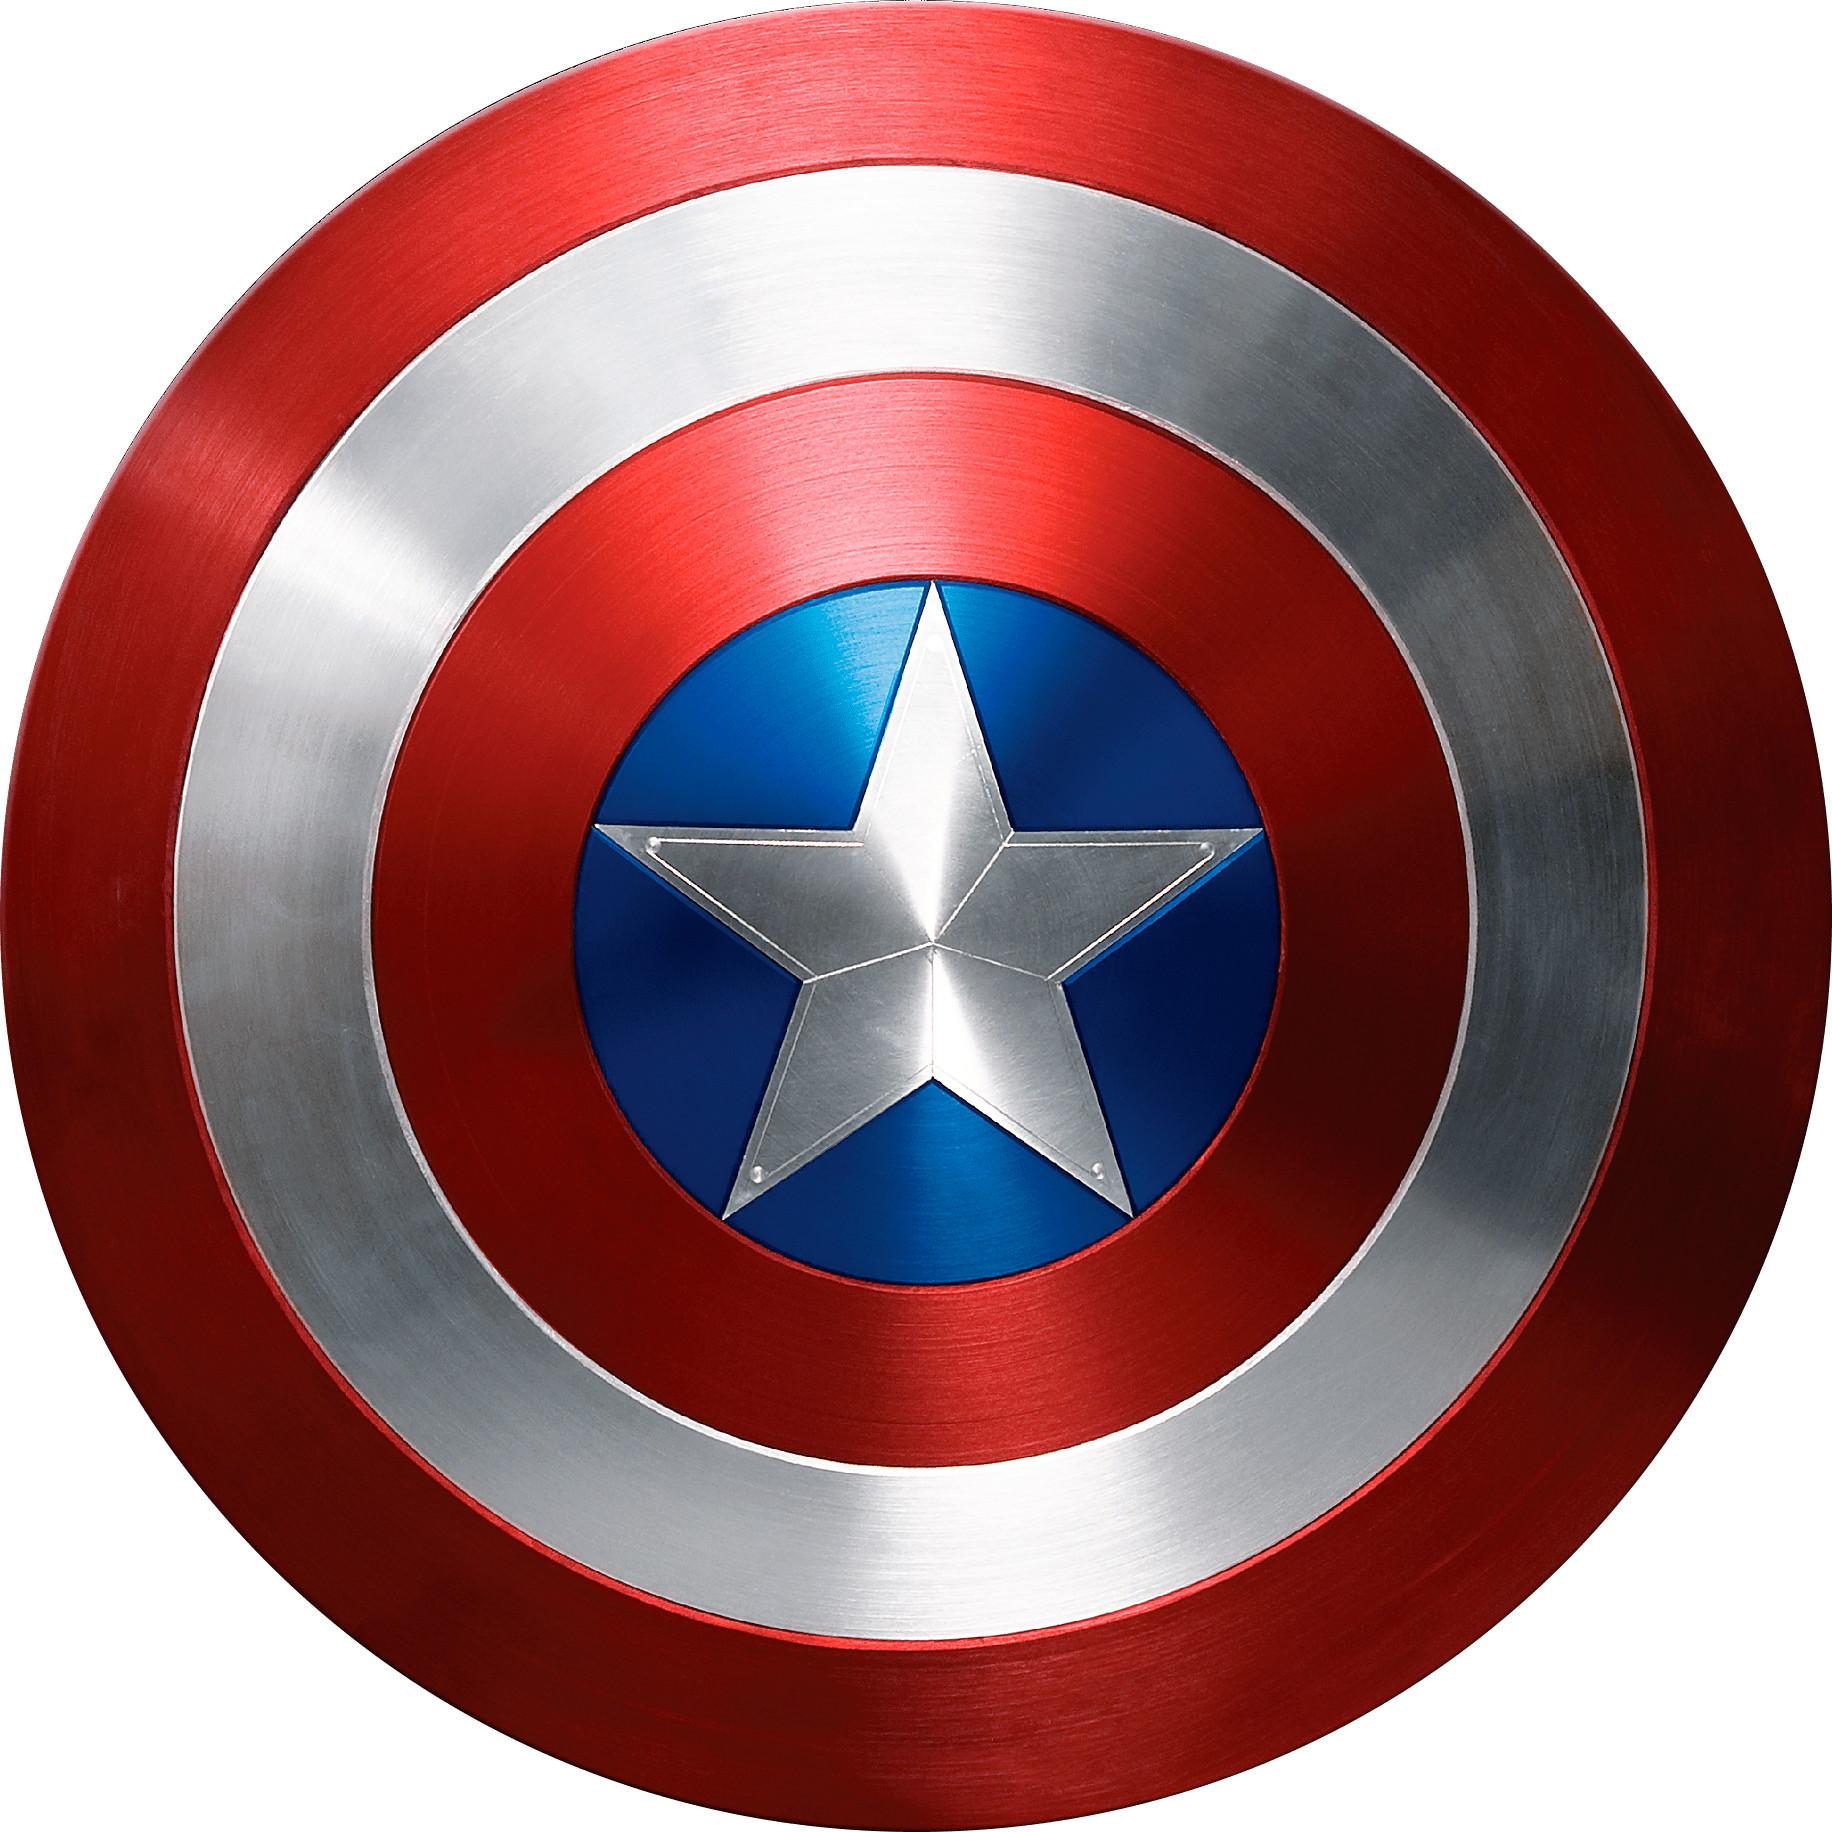 Captain america civil war logo png. Transparent stickpng photorealistic shield